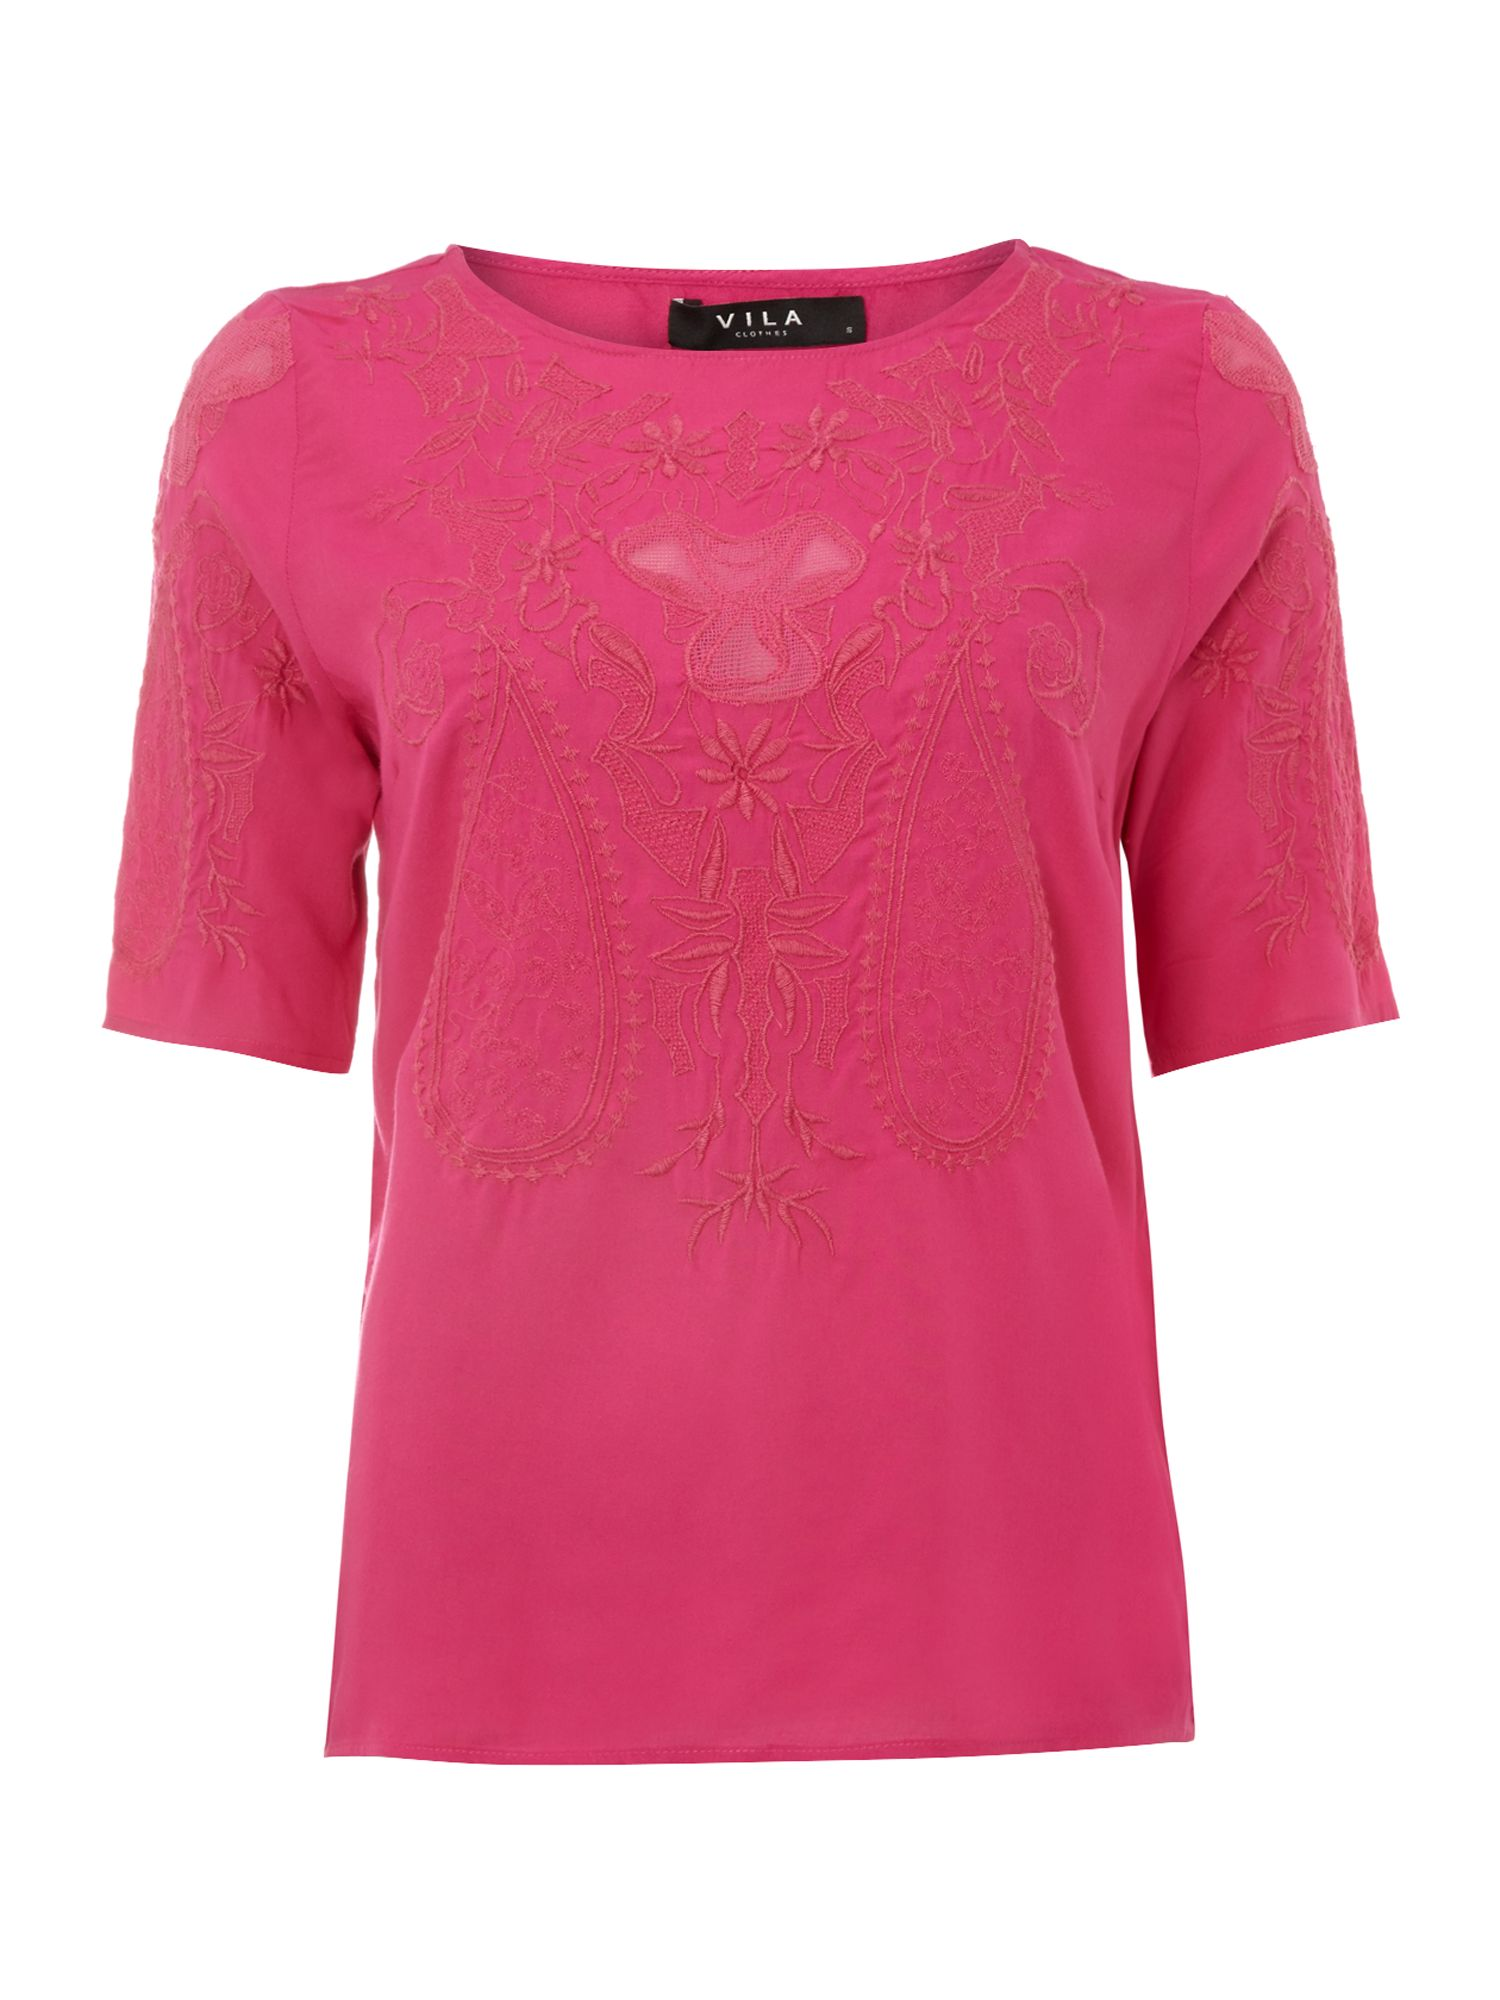 3/4 sleeve lace print top